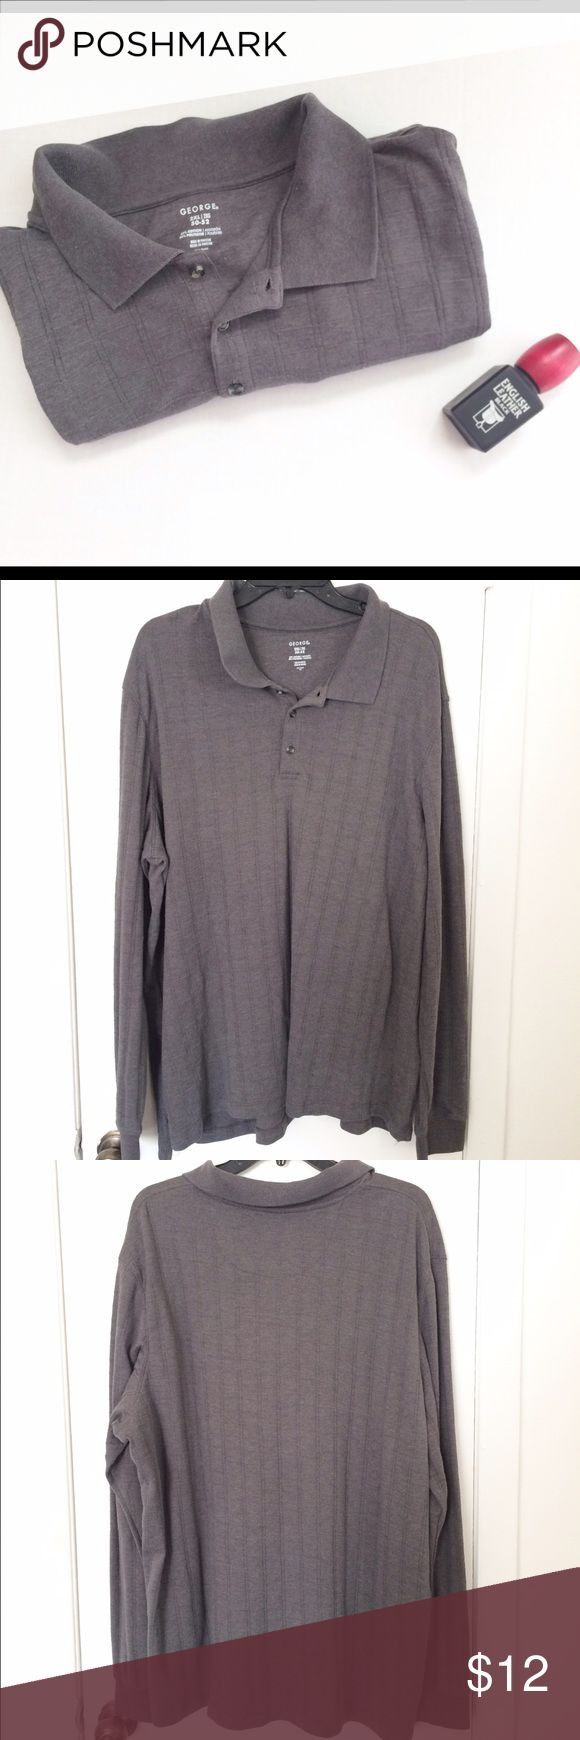 Men's Long Sleeve Henley Shirt Men's Long Sleeve Henley Shirt. In a size 2X. The color is a medium Gray. Has been worn a couple of times but is in Excellent Condition. Price is negotiable so make me an offer!👍🏻 Thank You.☺ ❌No Trades❌ Shirts Tees - Short Sleeve